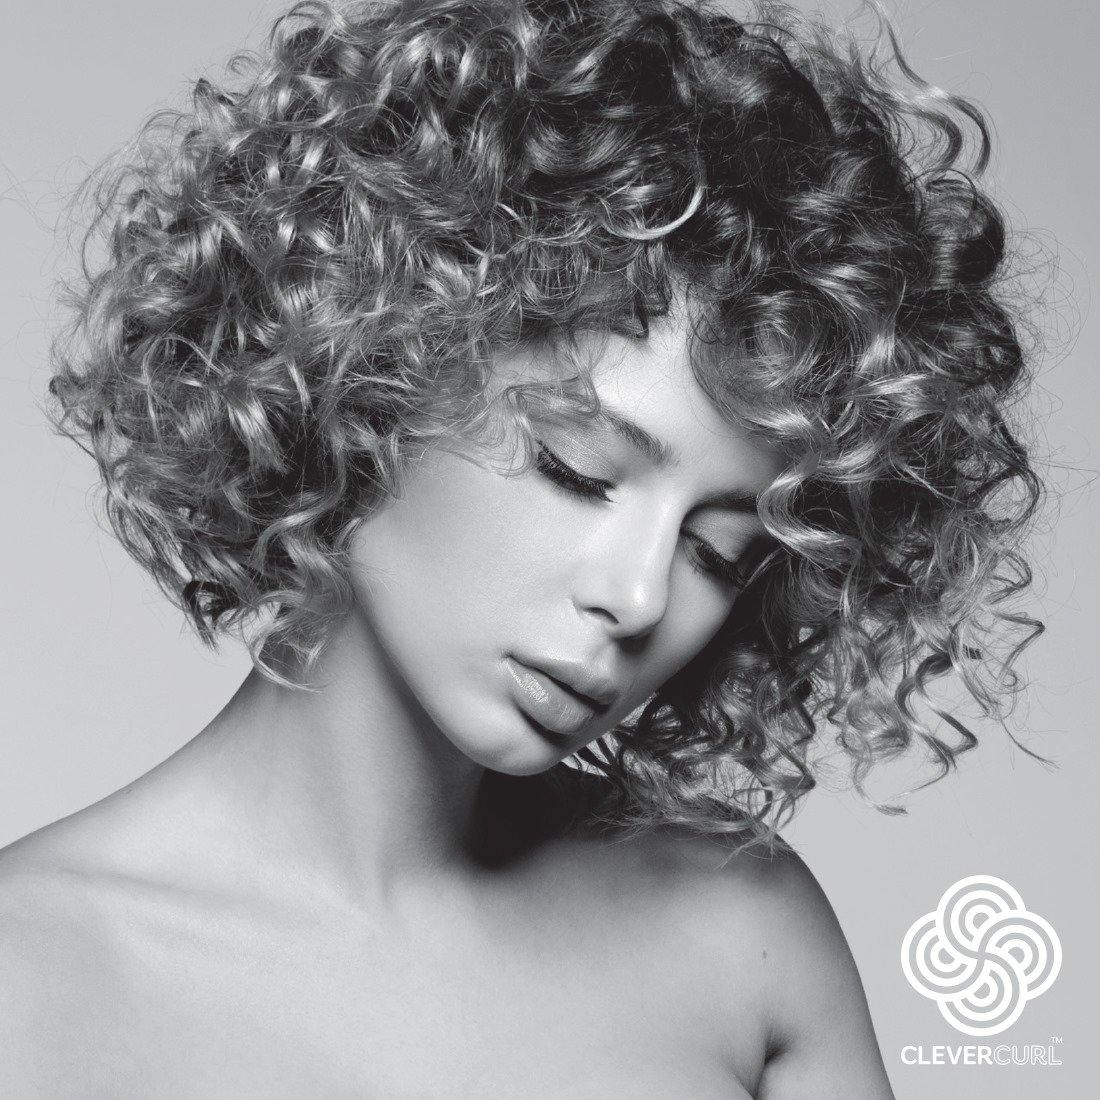 NEWTOWN - The Curly Girl Method - 7 December